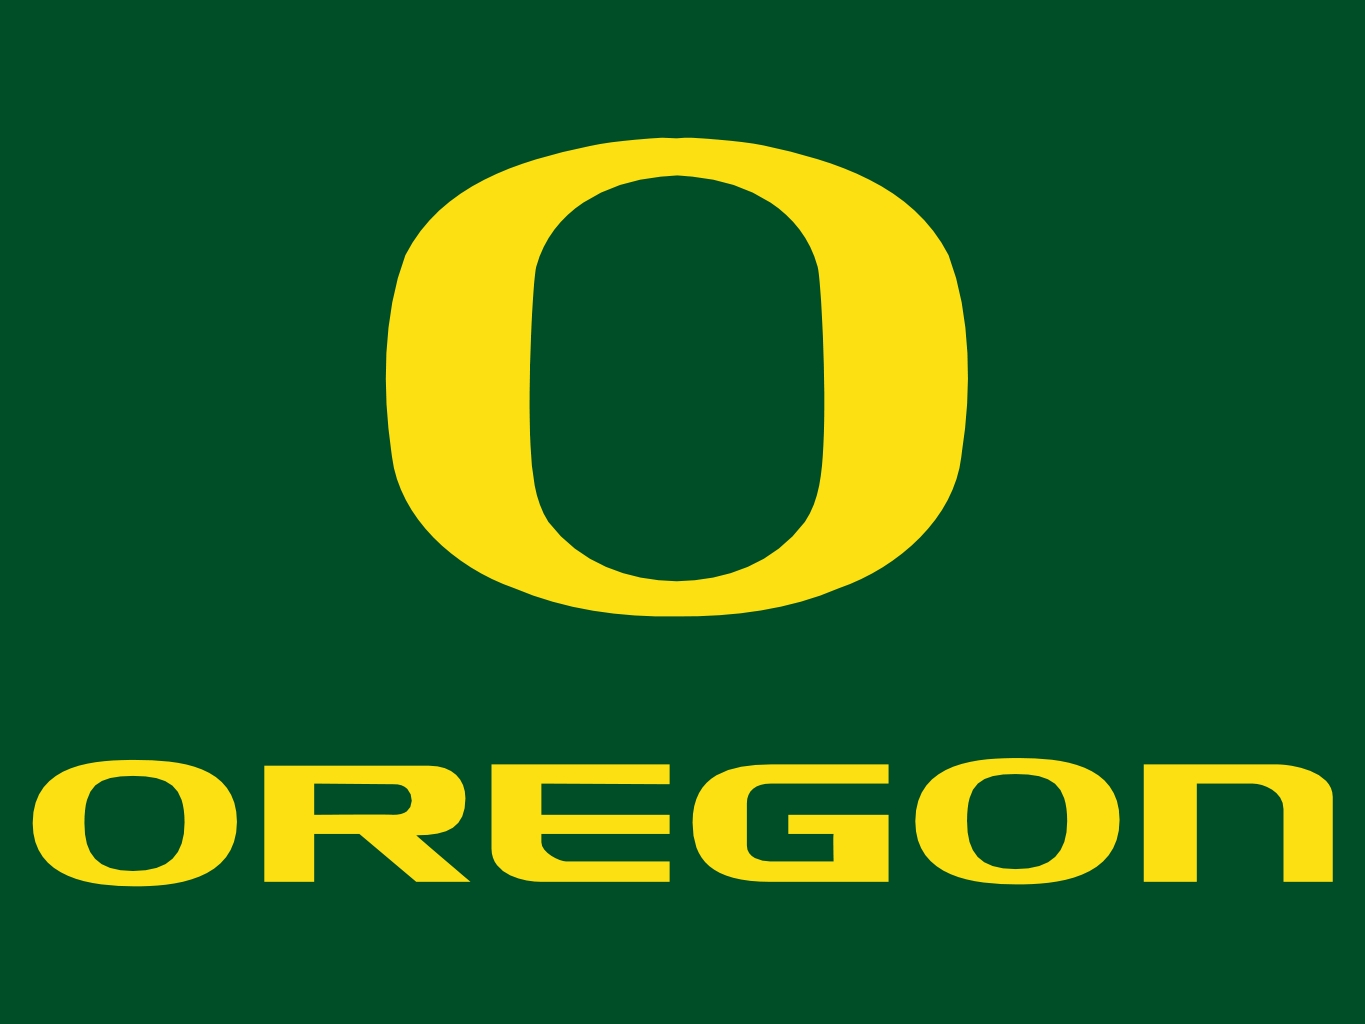 Oregon Ducks Clip Art Pictures to Pin on Pinterest.